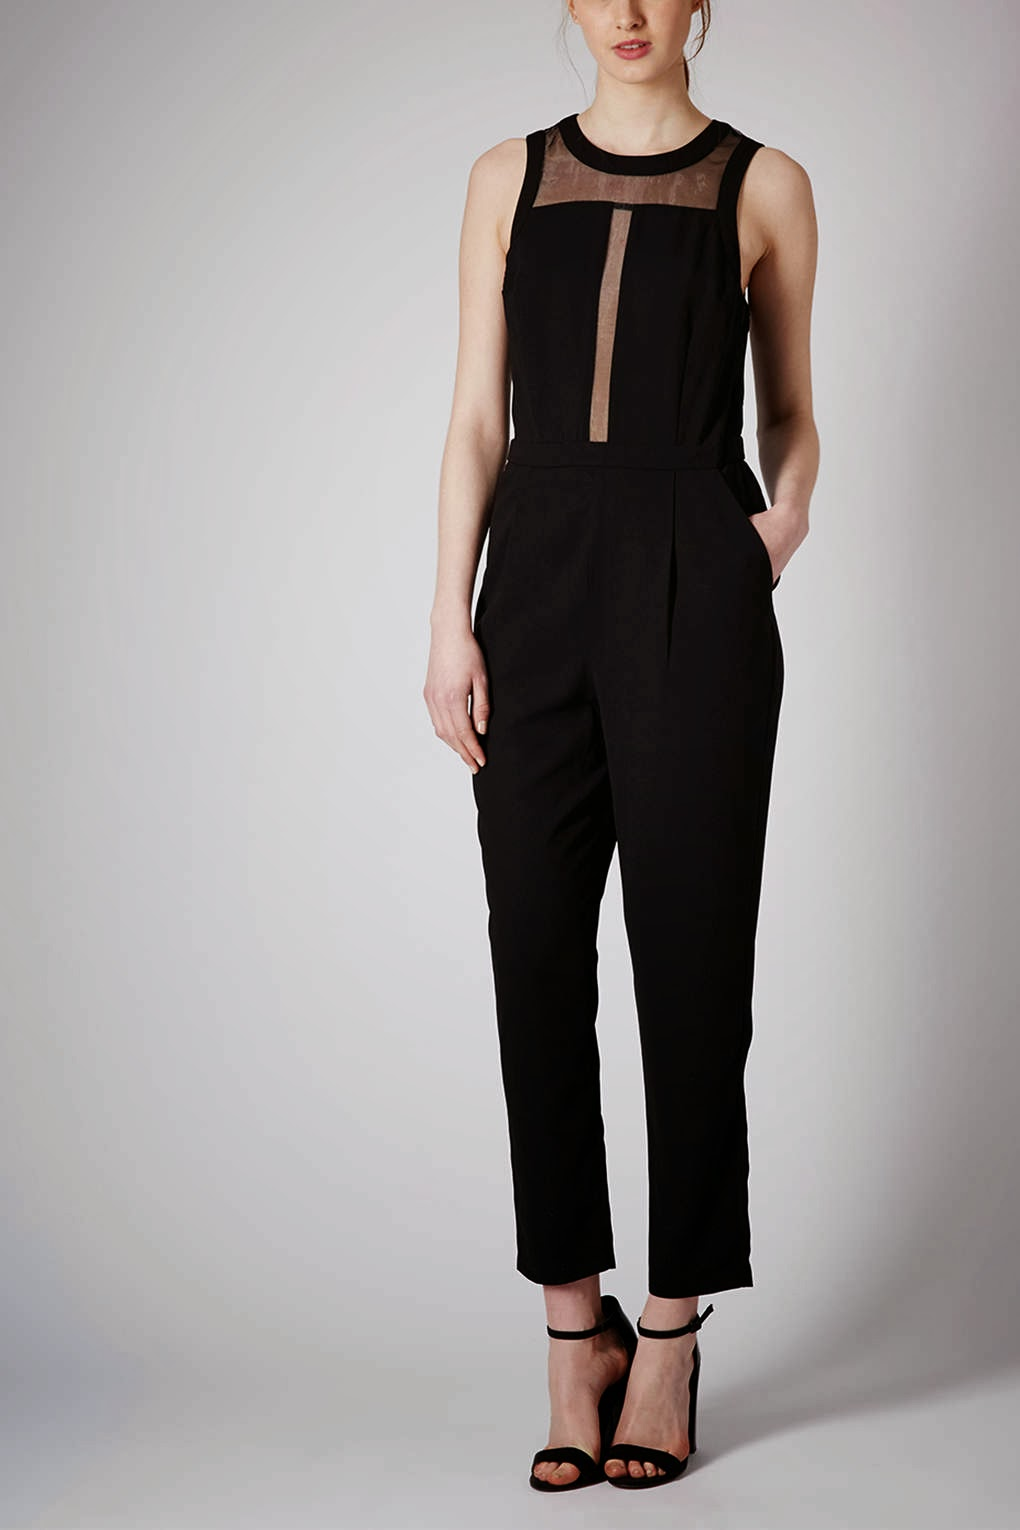 topshop black jumpsuit